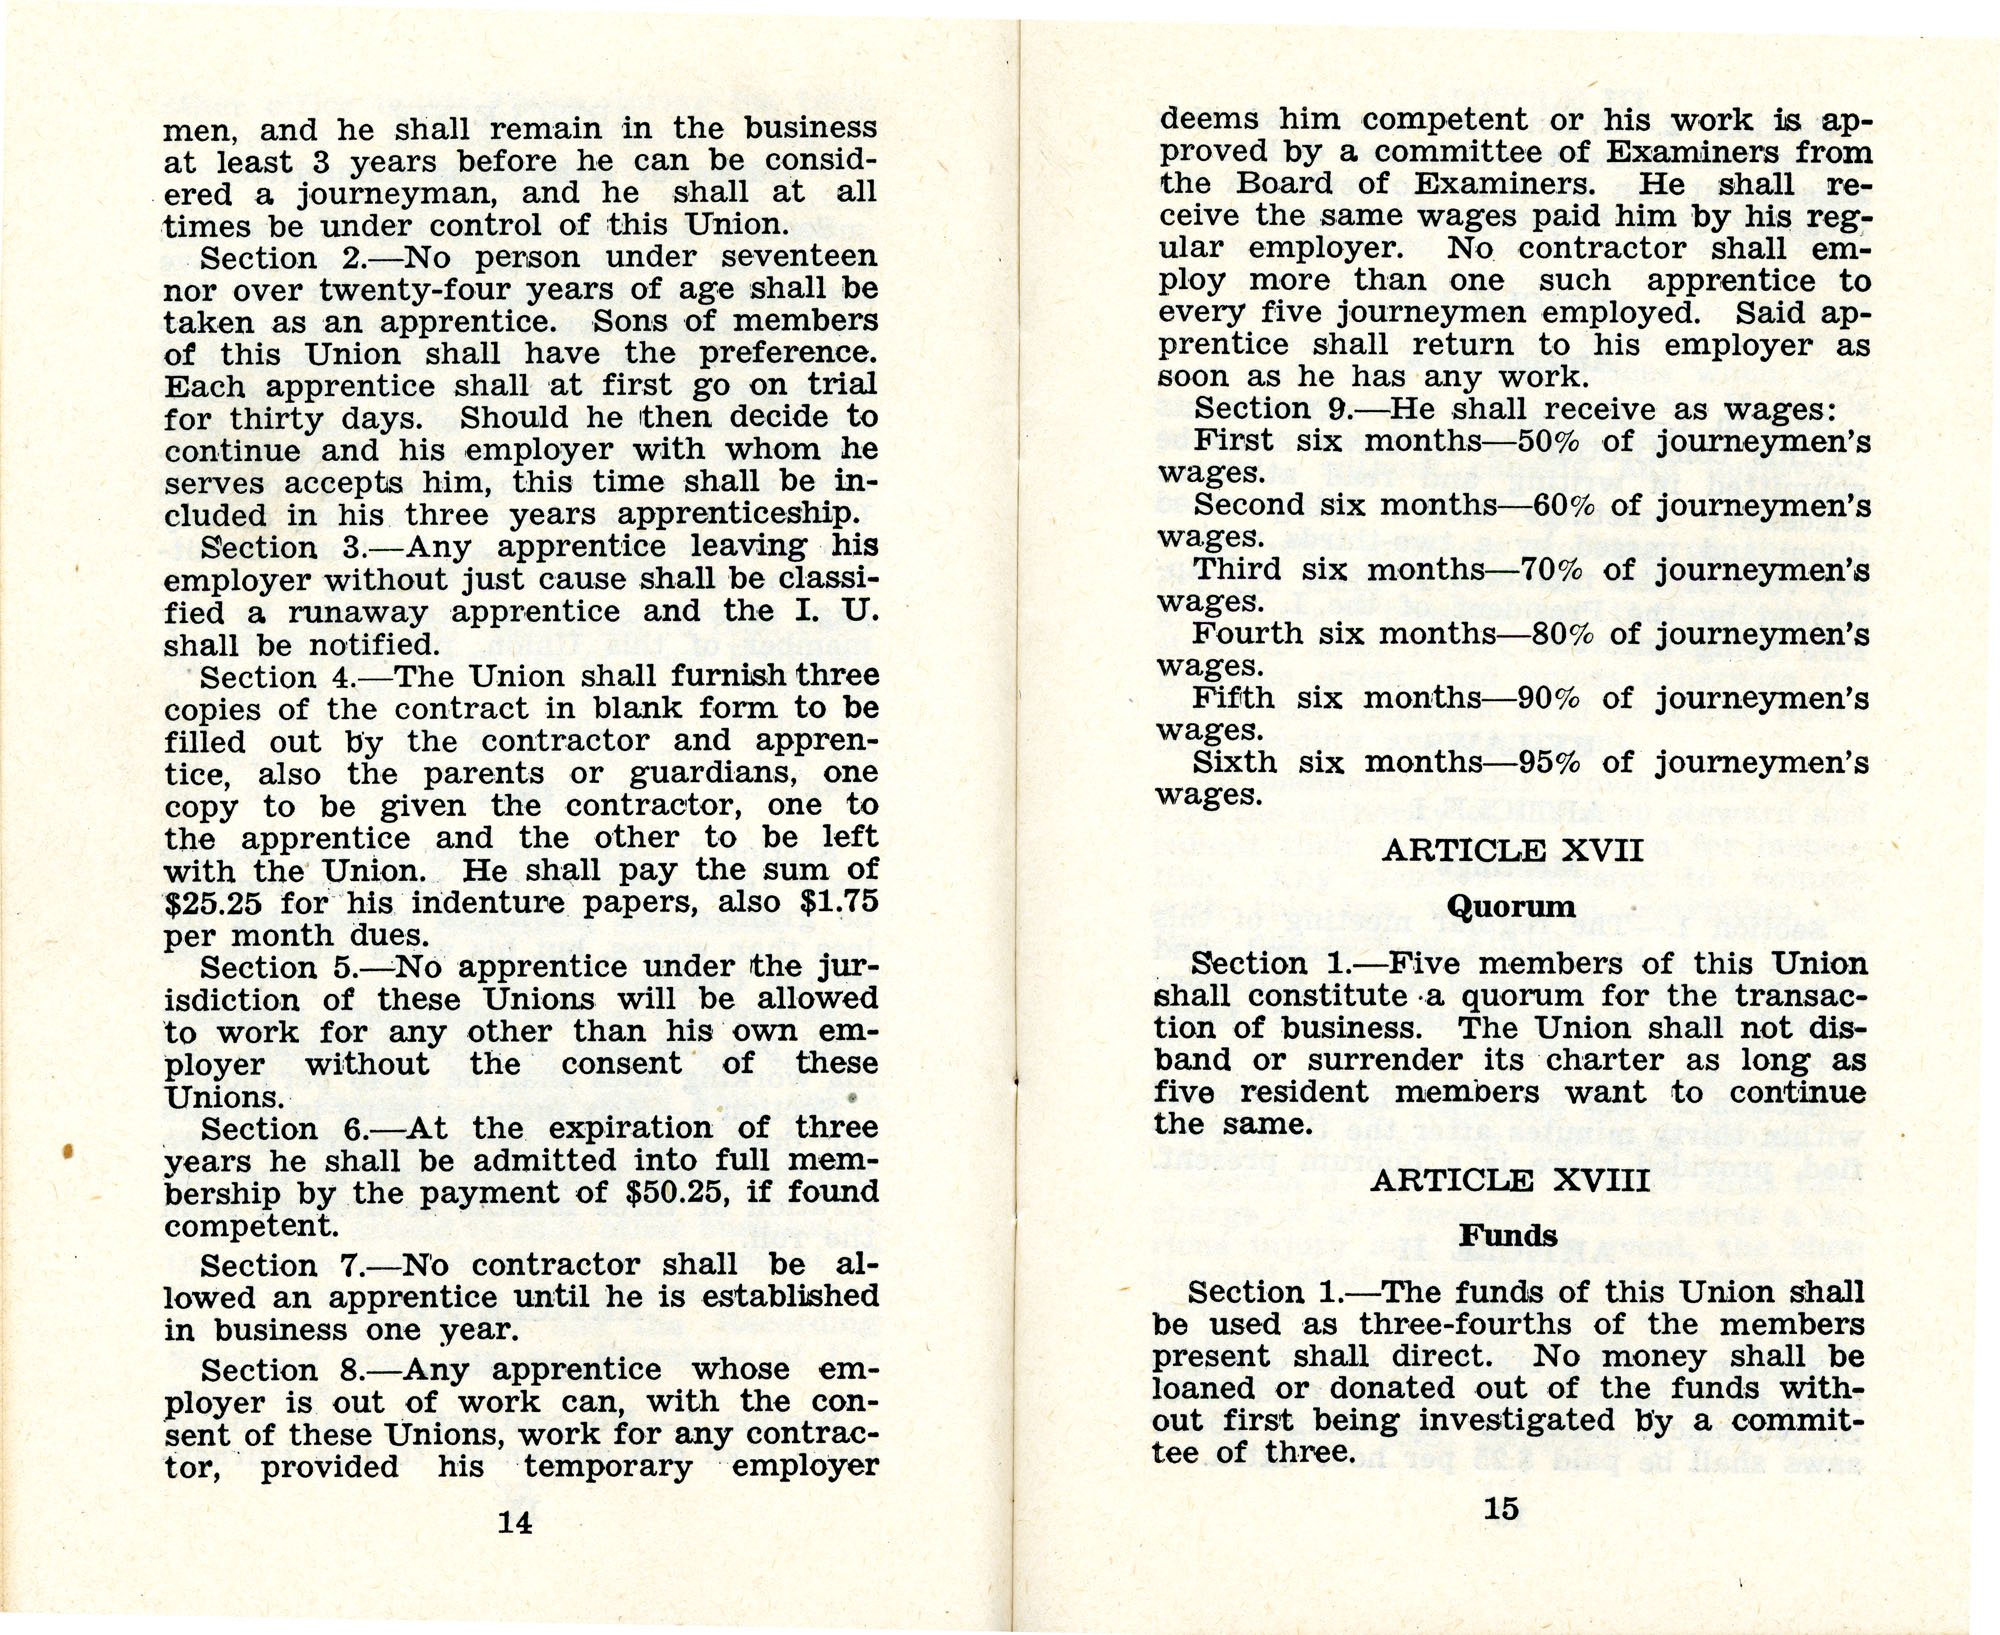 Constitution and by-laws of unions no.1 and 10, Page 8